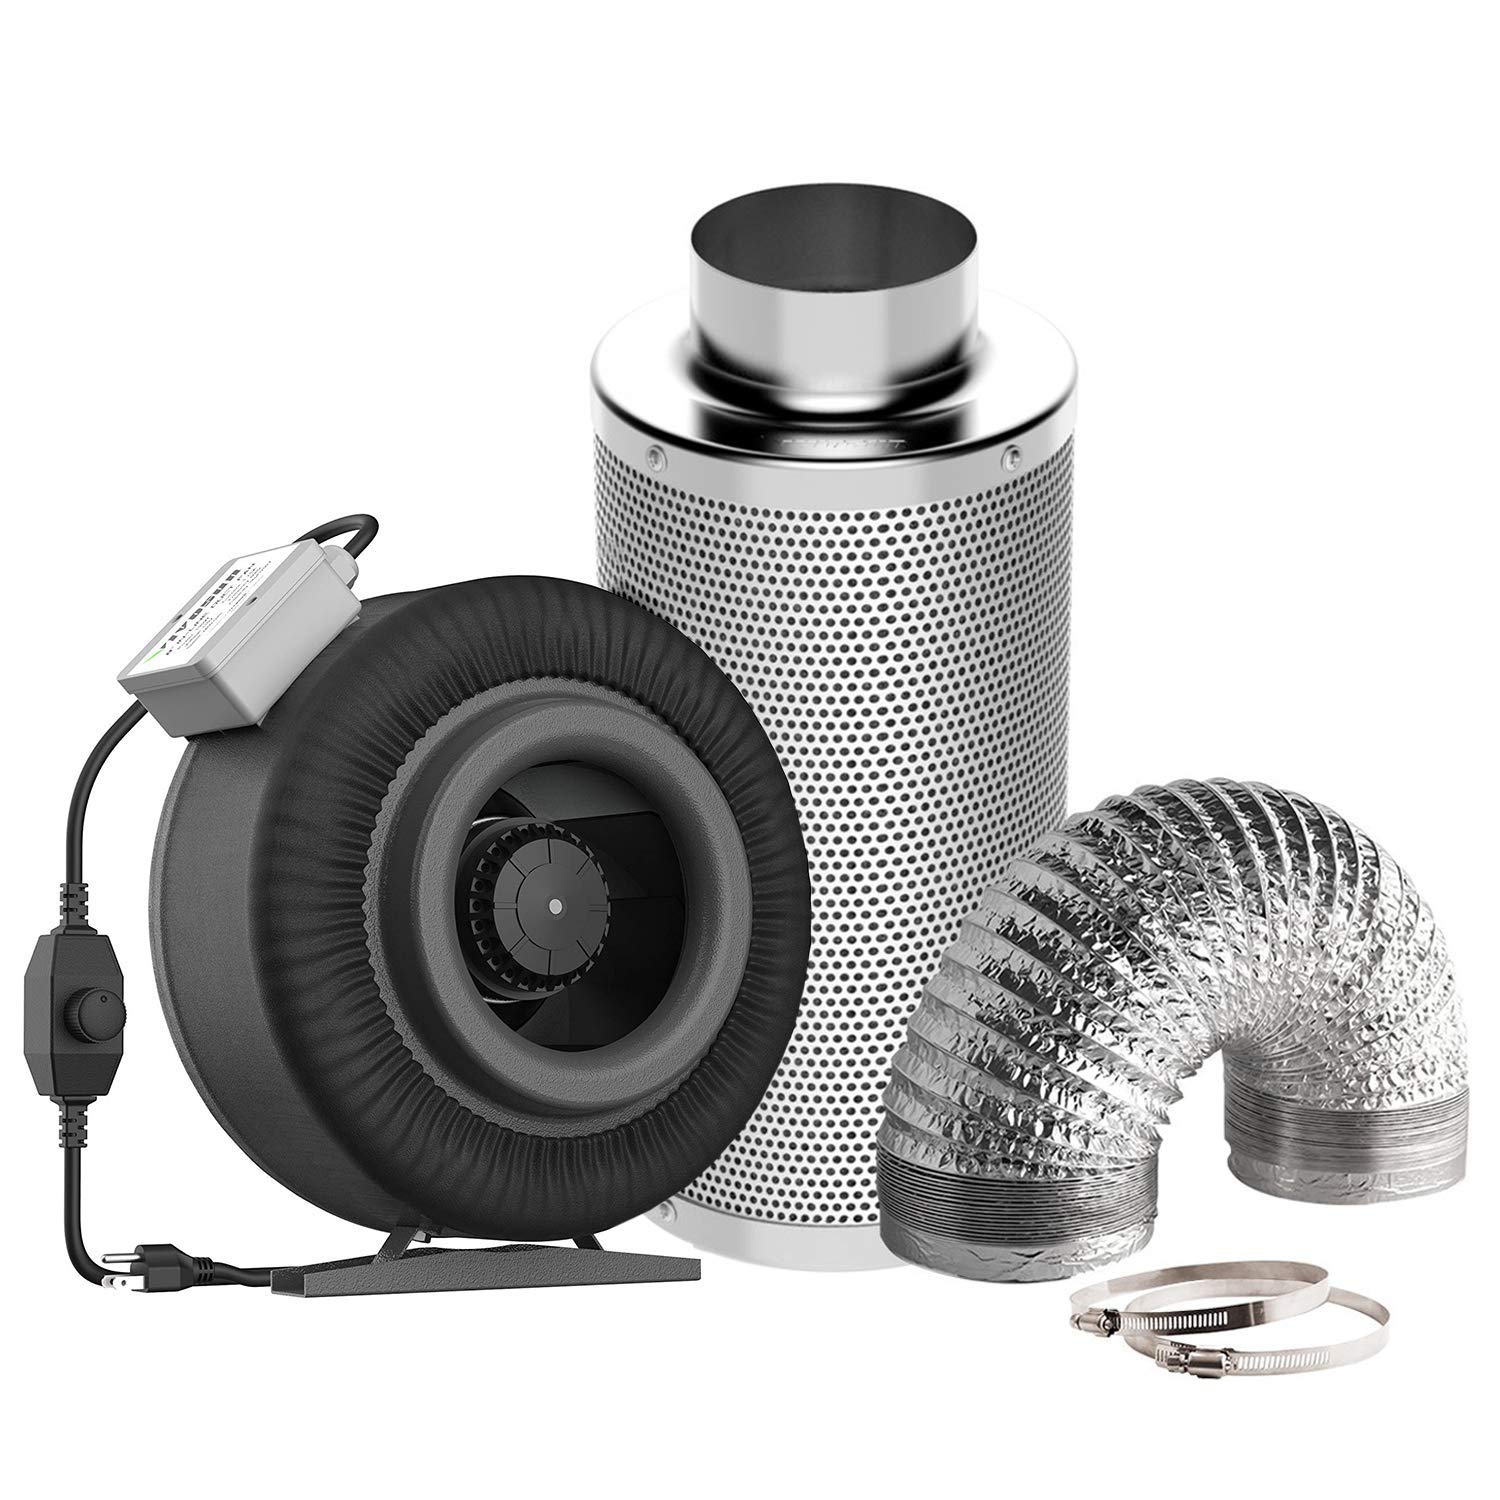 VIVOSUN Air Filtration Kit: 8 Inch 740 CFM Inline Fan with Speed Controller, 8 Inch Carbon Filter and 25 Feet of Ducting Combo (Renewed) by VIVOSUN